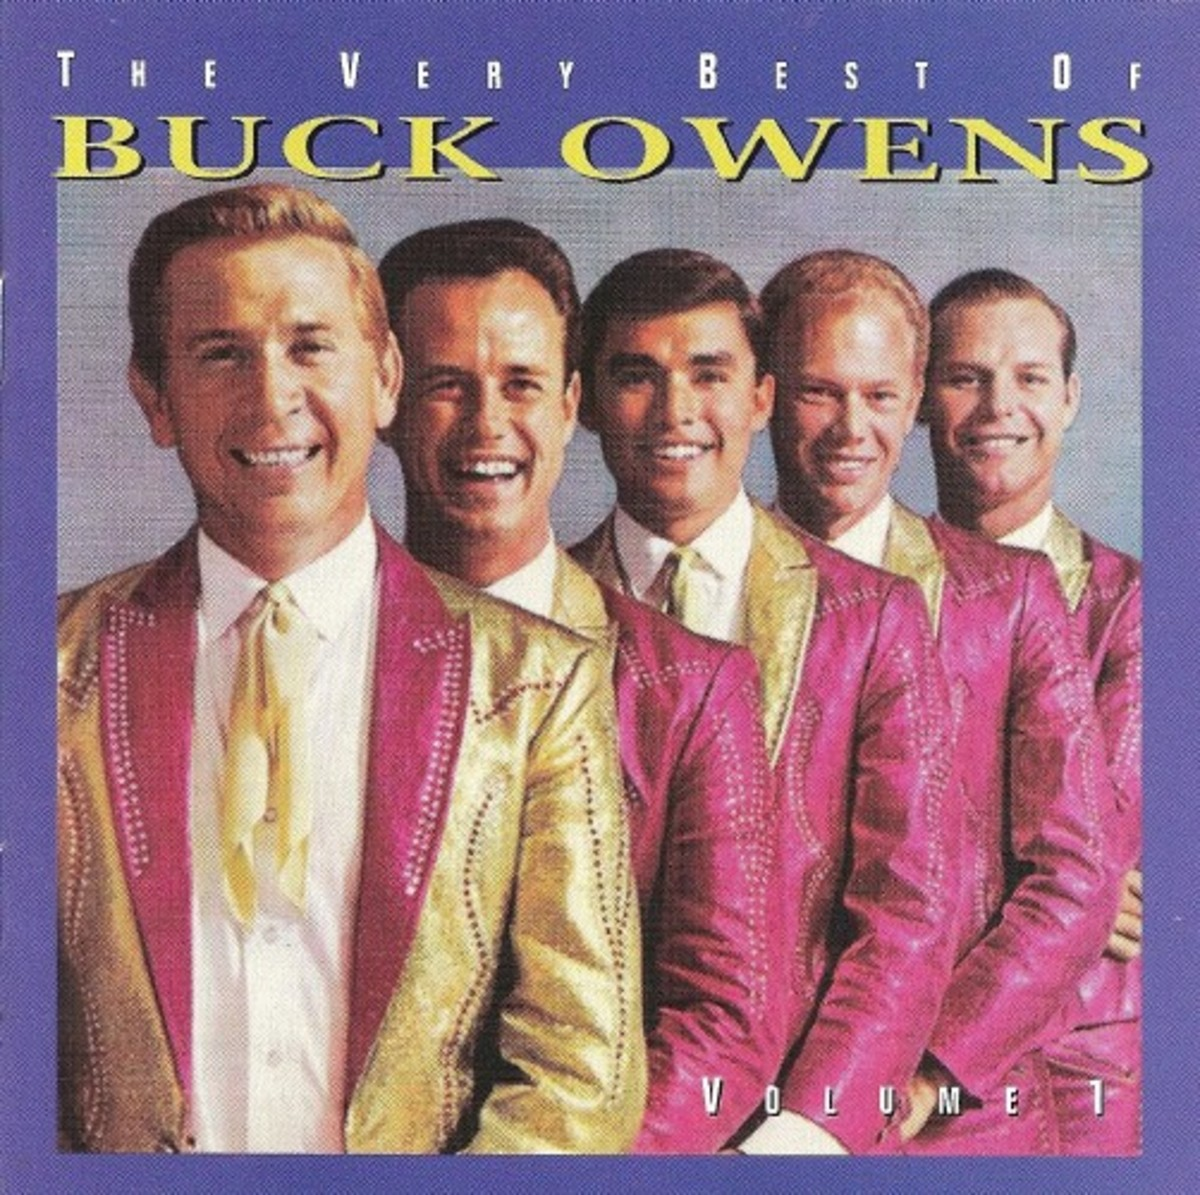 buck_owens_the_very_best_of_buck_owens_vol1_1994_retail_cd-front